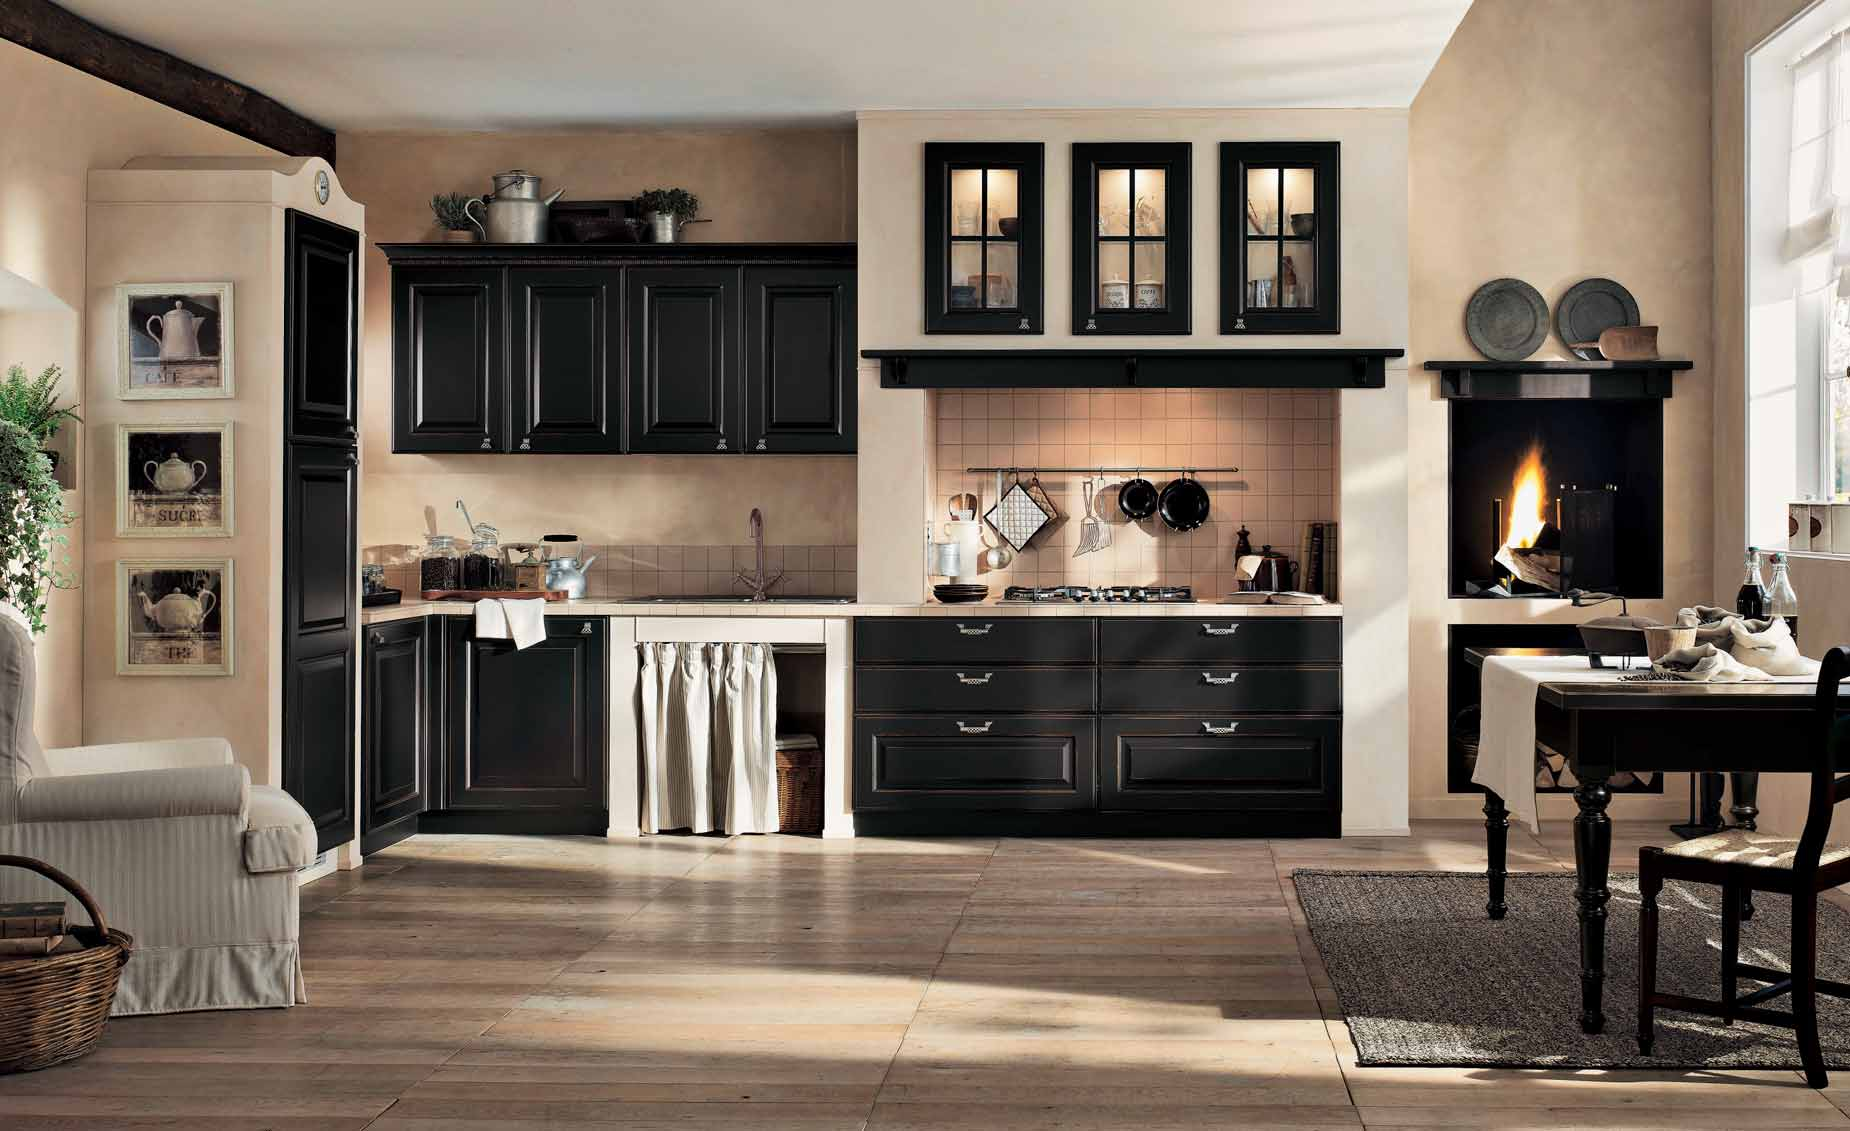 Interior exterior plan classic kitchen in black and for Kitchen interior images